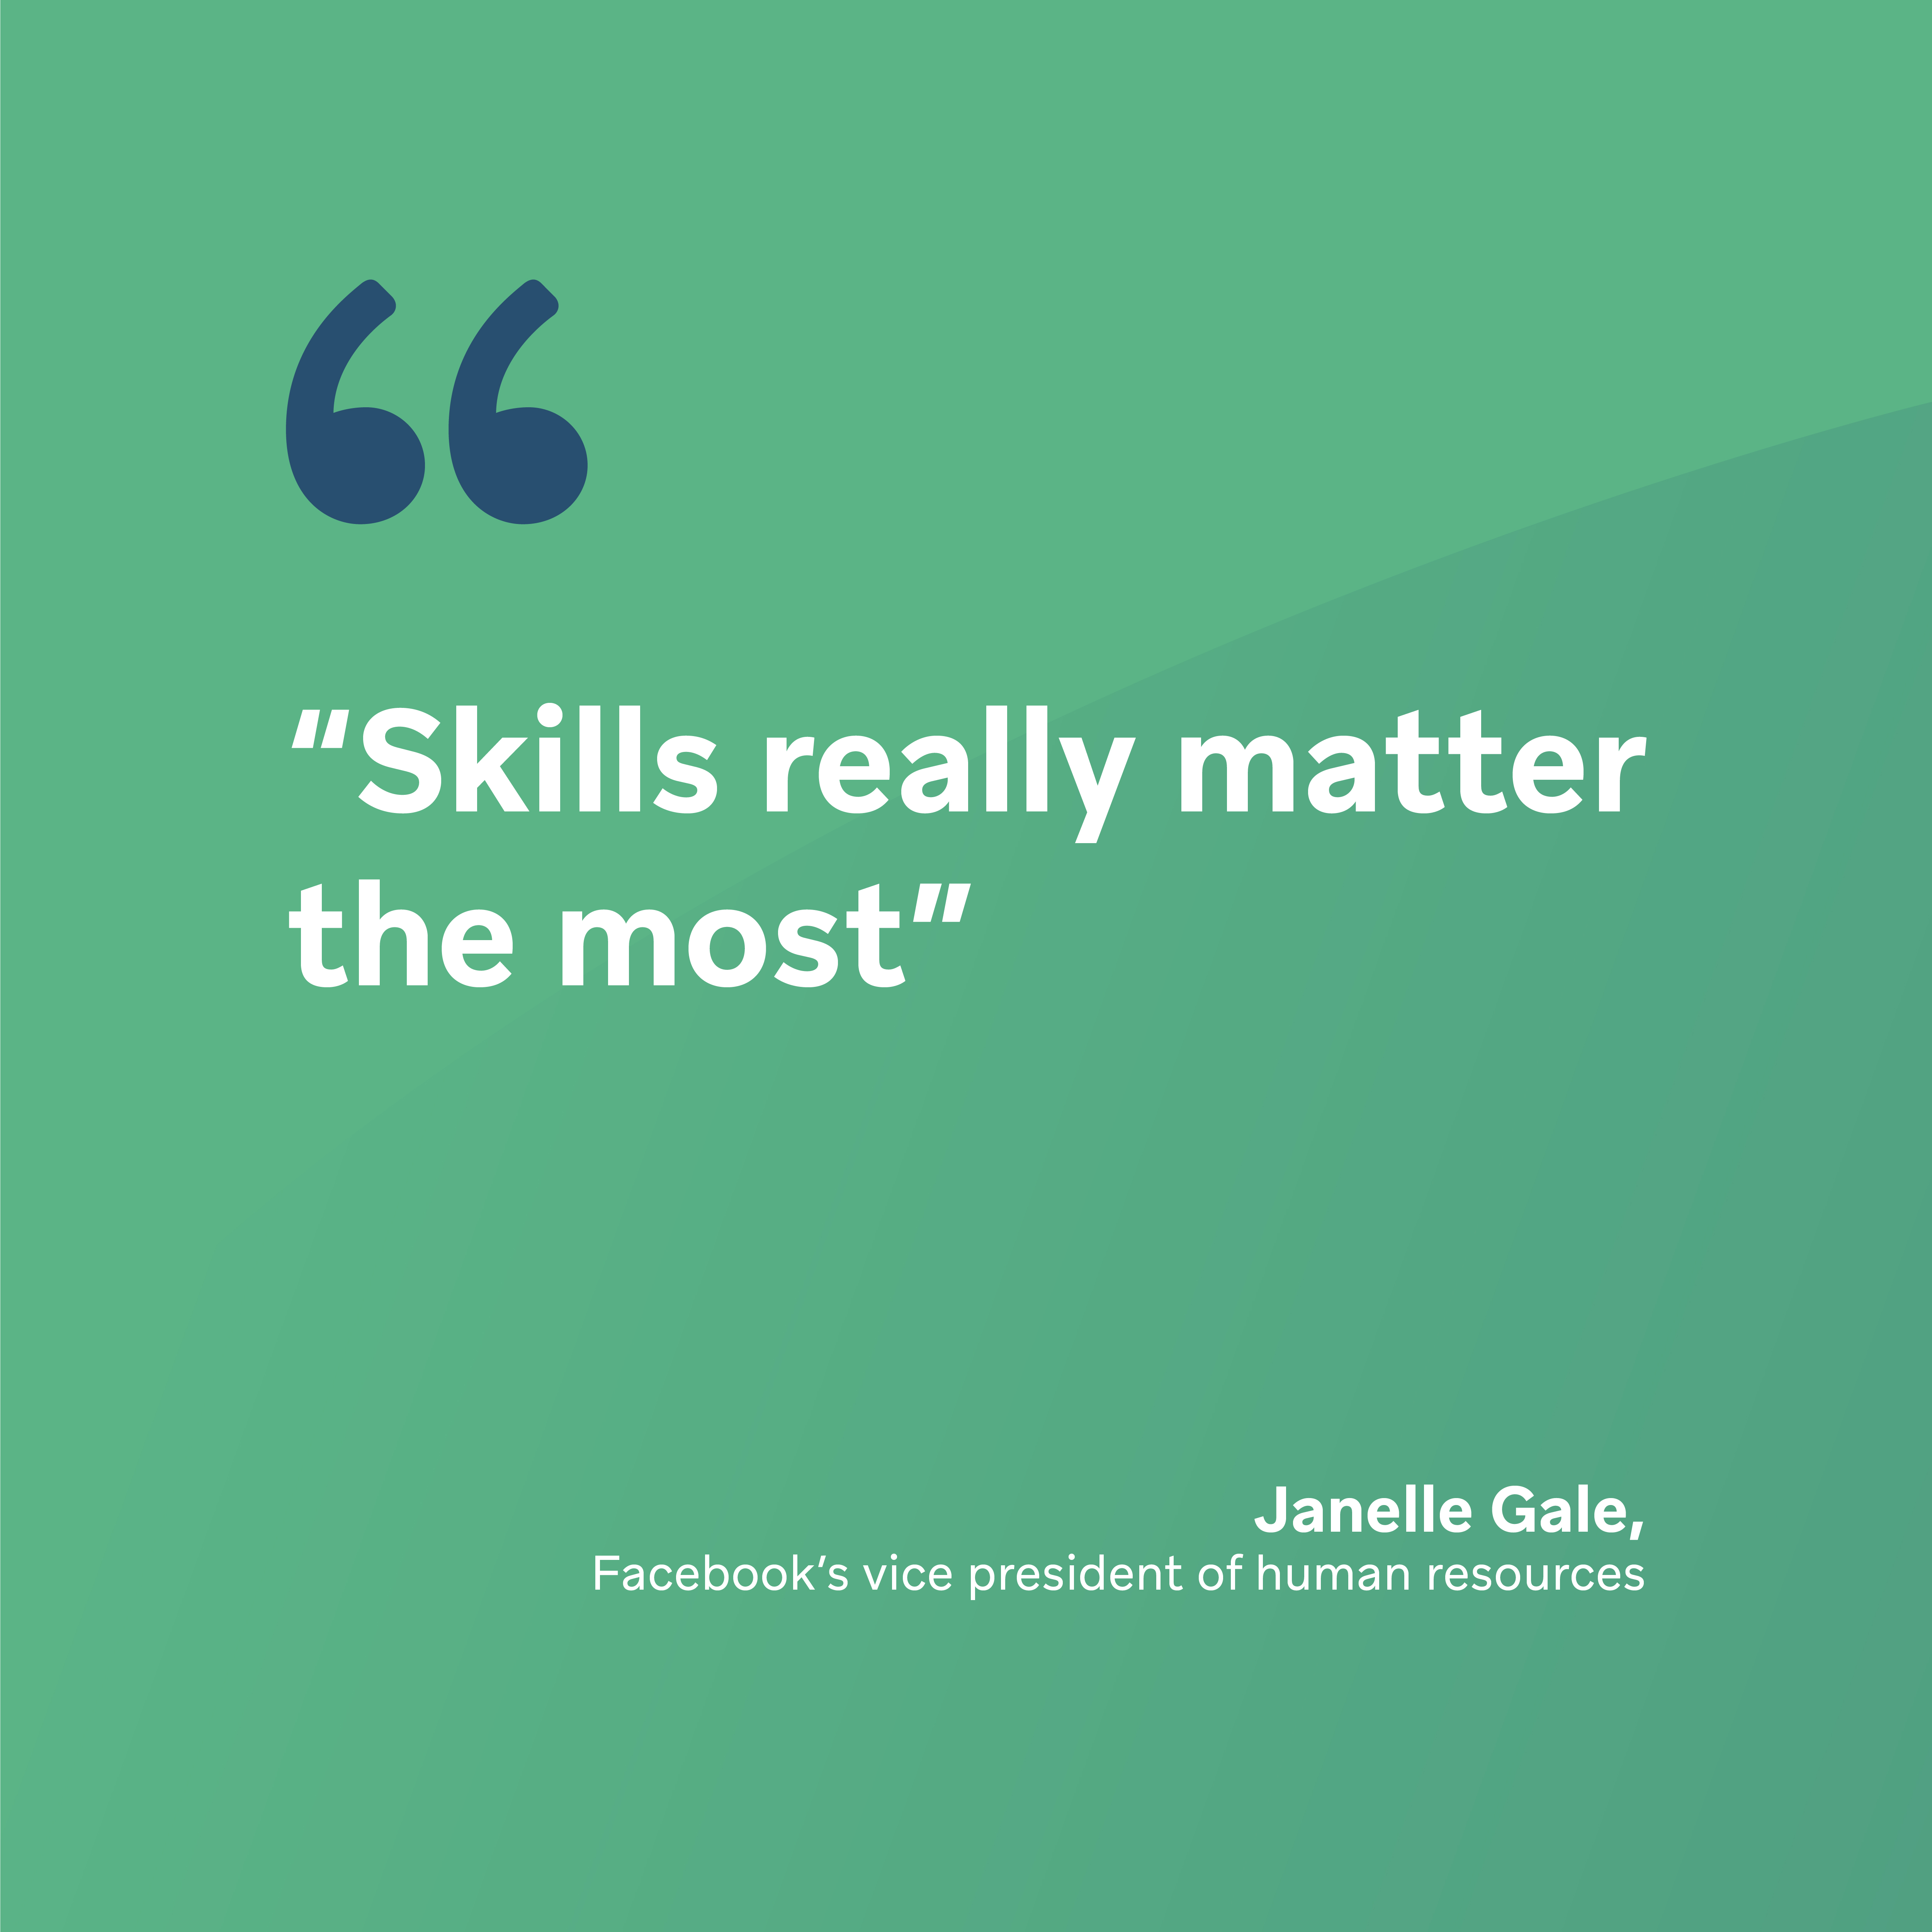 Skills really matter the most, quote by Janelle Gale